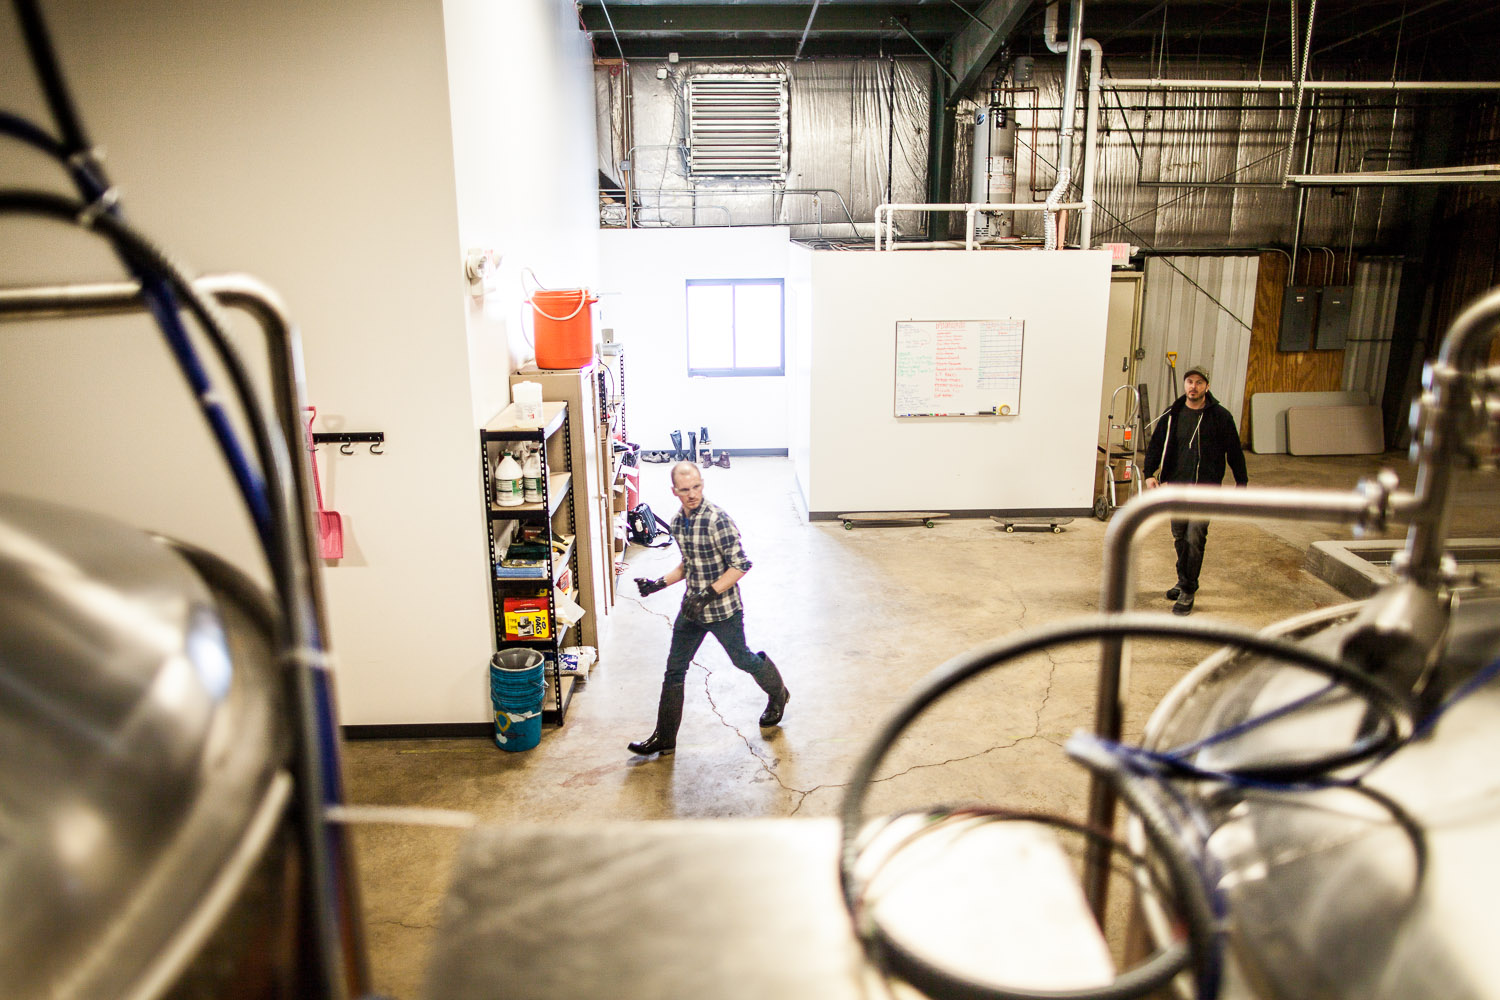 Taproom manager Jeff Cagle and Co-founder Eric Hobbs help get the day started.